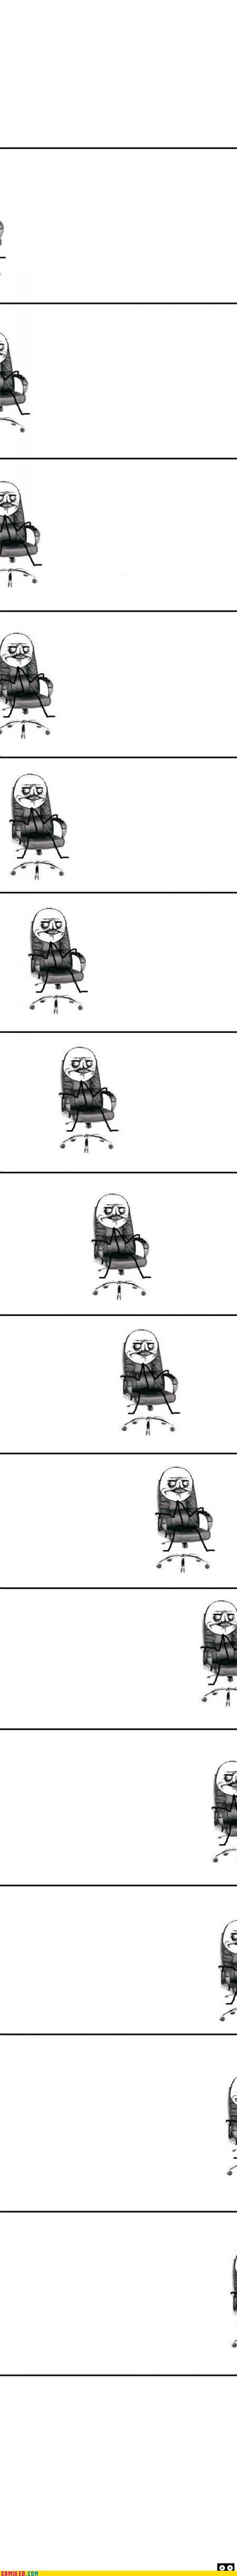 me gusta office chair Rage Comics rolly chair - 4810482688